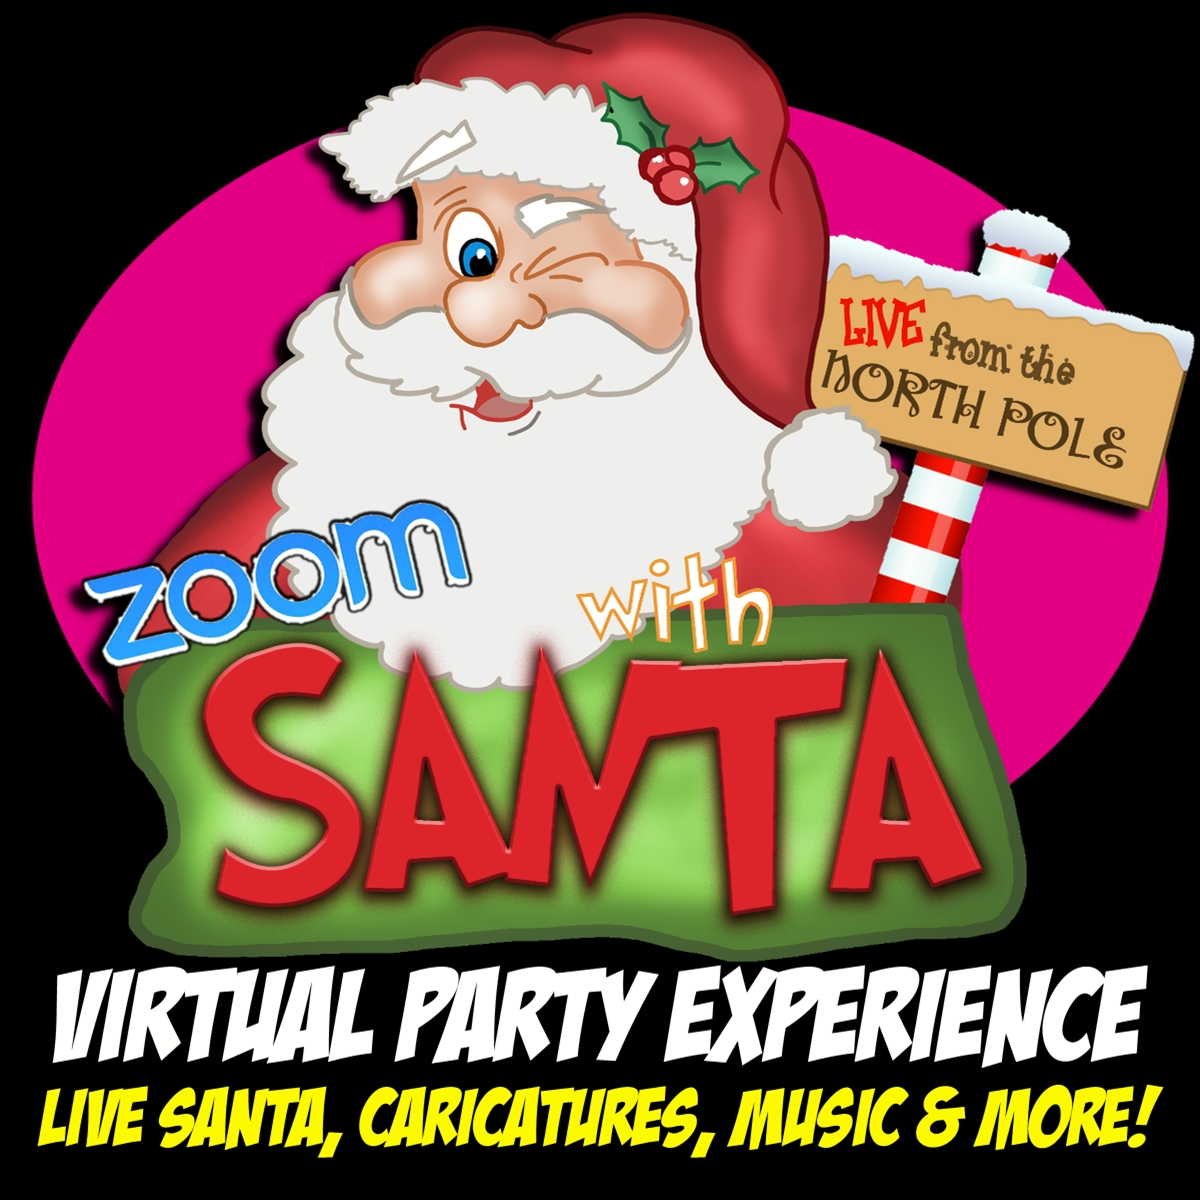 Zoom with Santa, Virtual Santa, Zoom Santa, Zoom Holiday Party, Skype with Santa, Virtual Holiday Party, Zoom Party Ideas